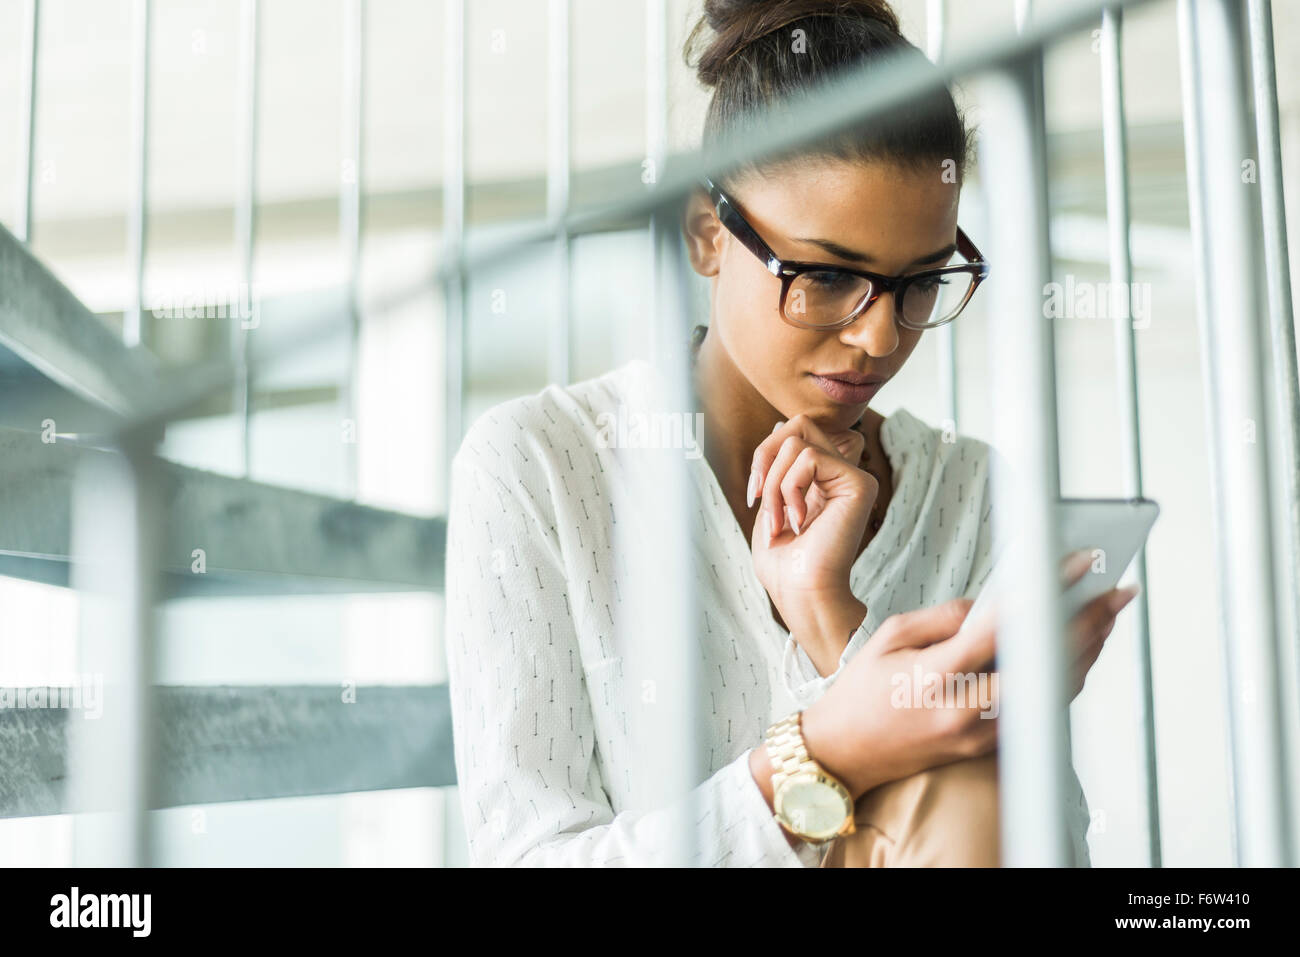 Young woman aon spiral staircase looking on cell phone - Stock Image